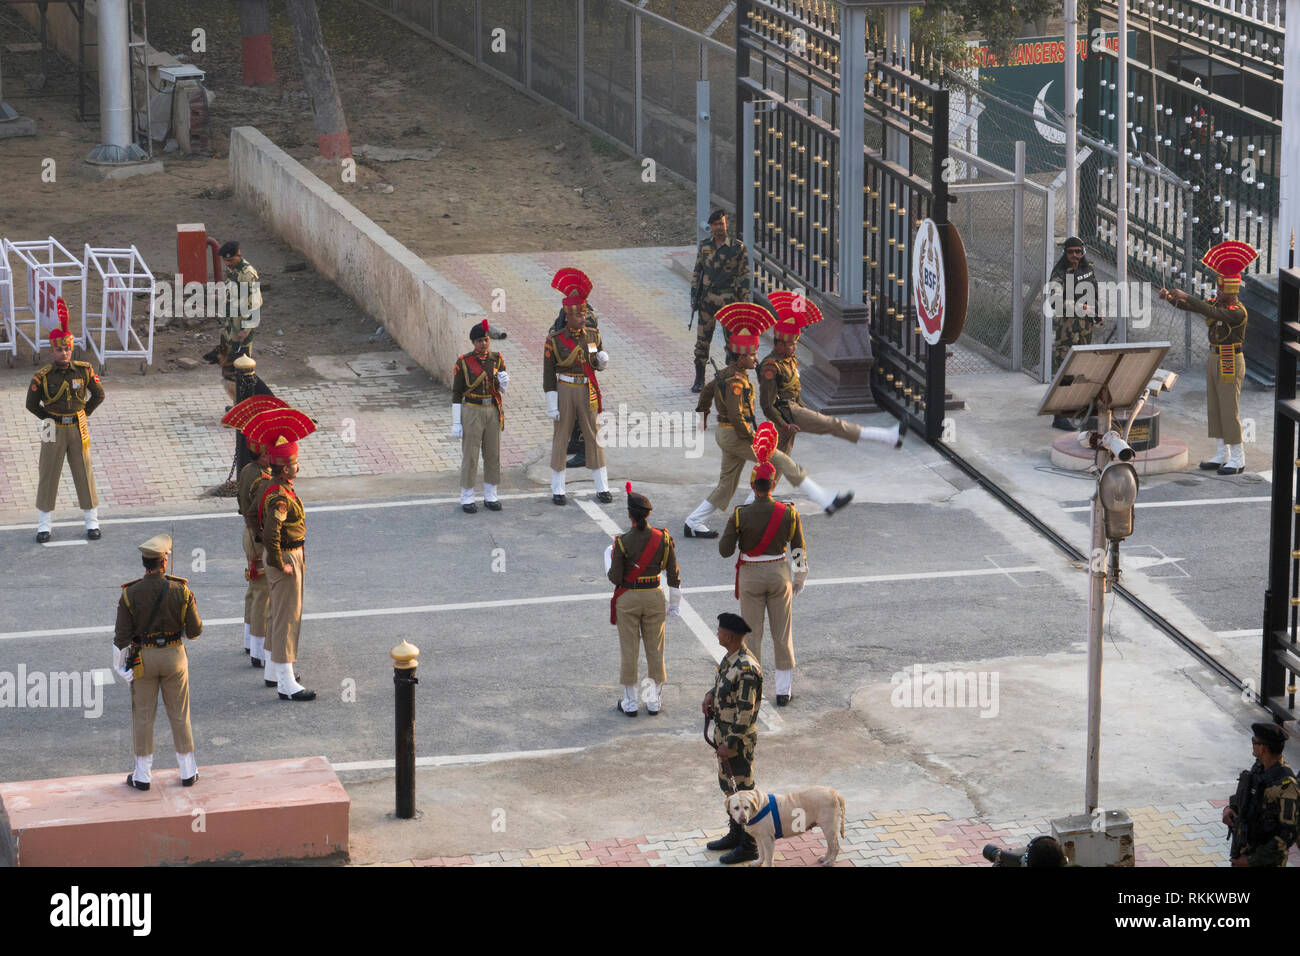 Indian soldiers perform in daily retreat ceremony at Wagah border in Punjab, India - Stock Image